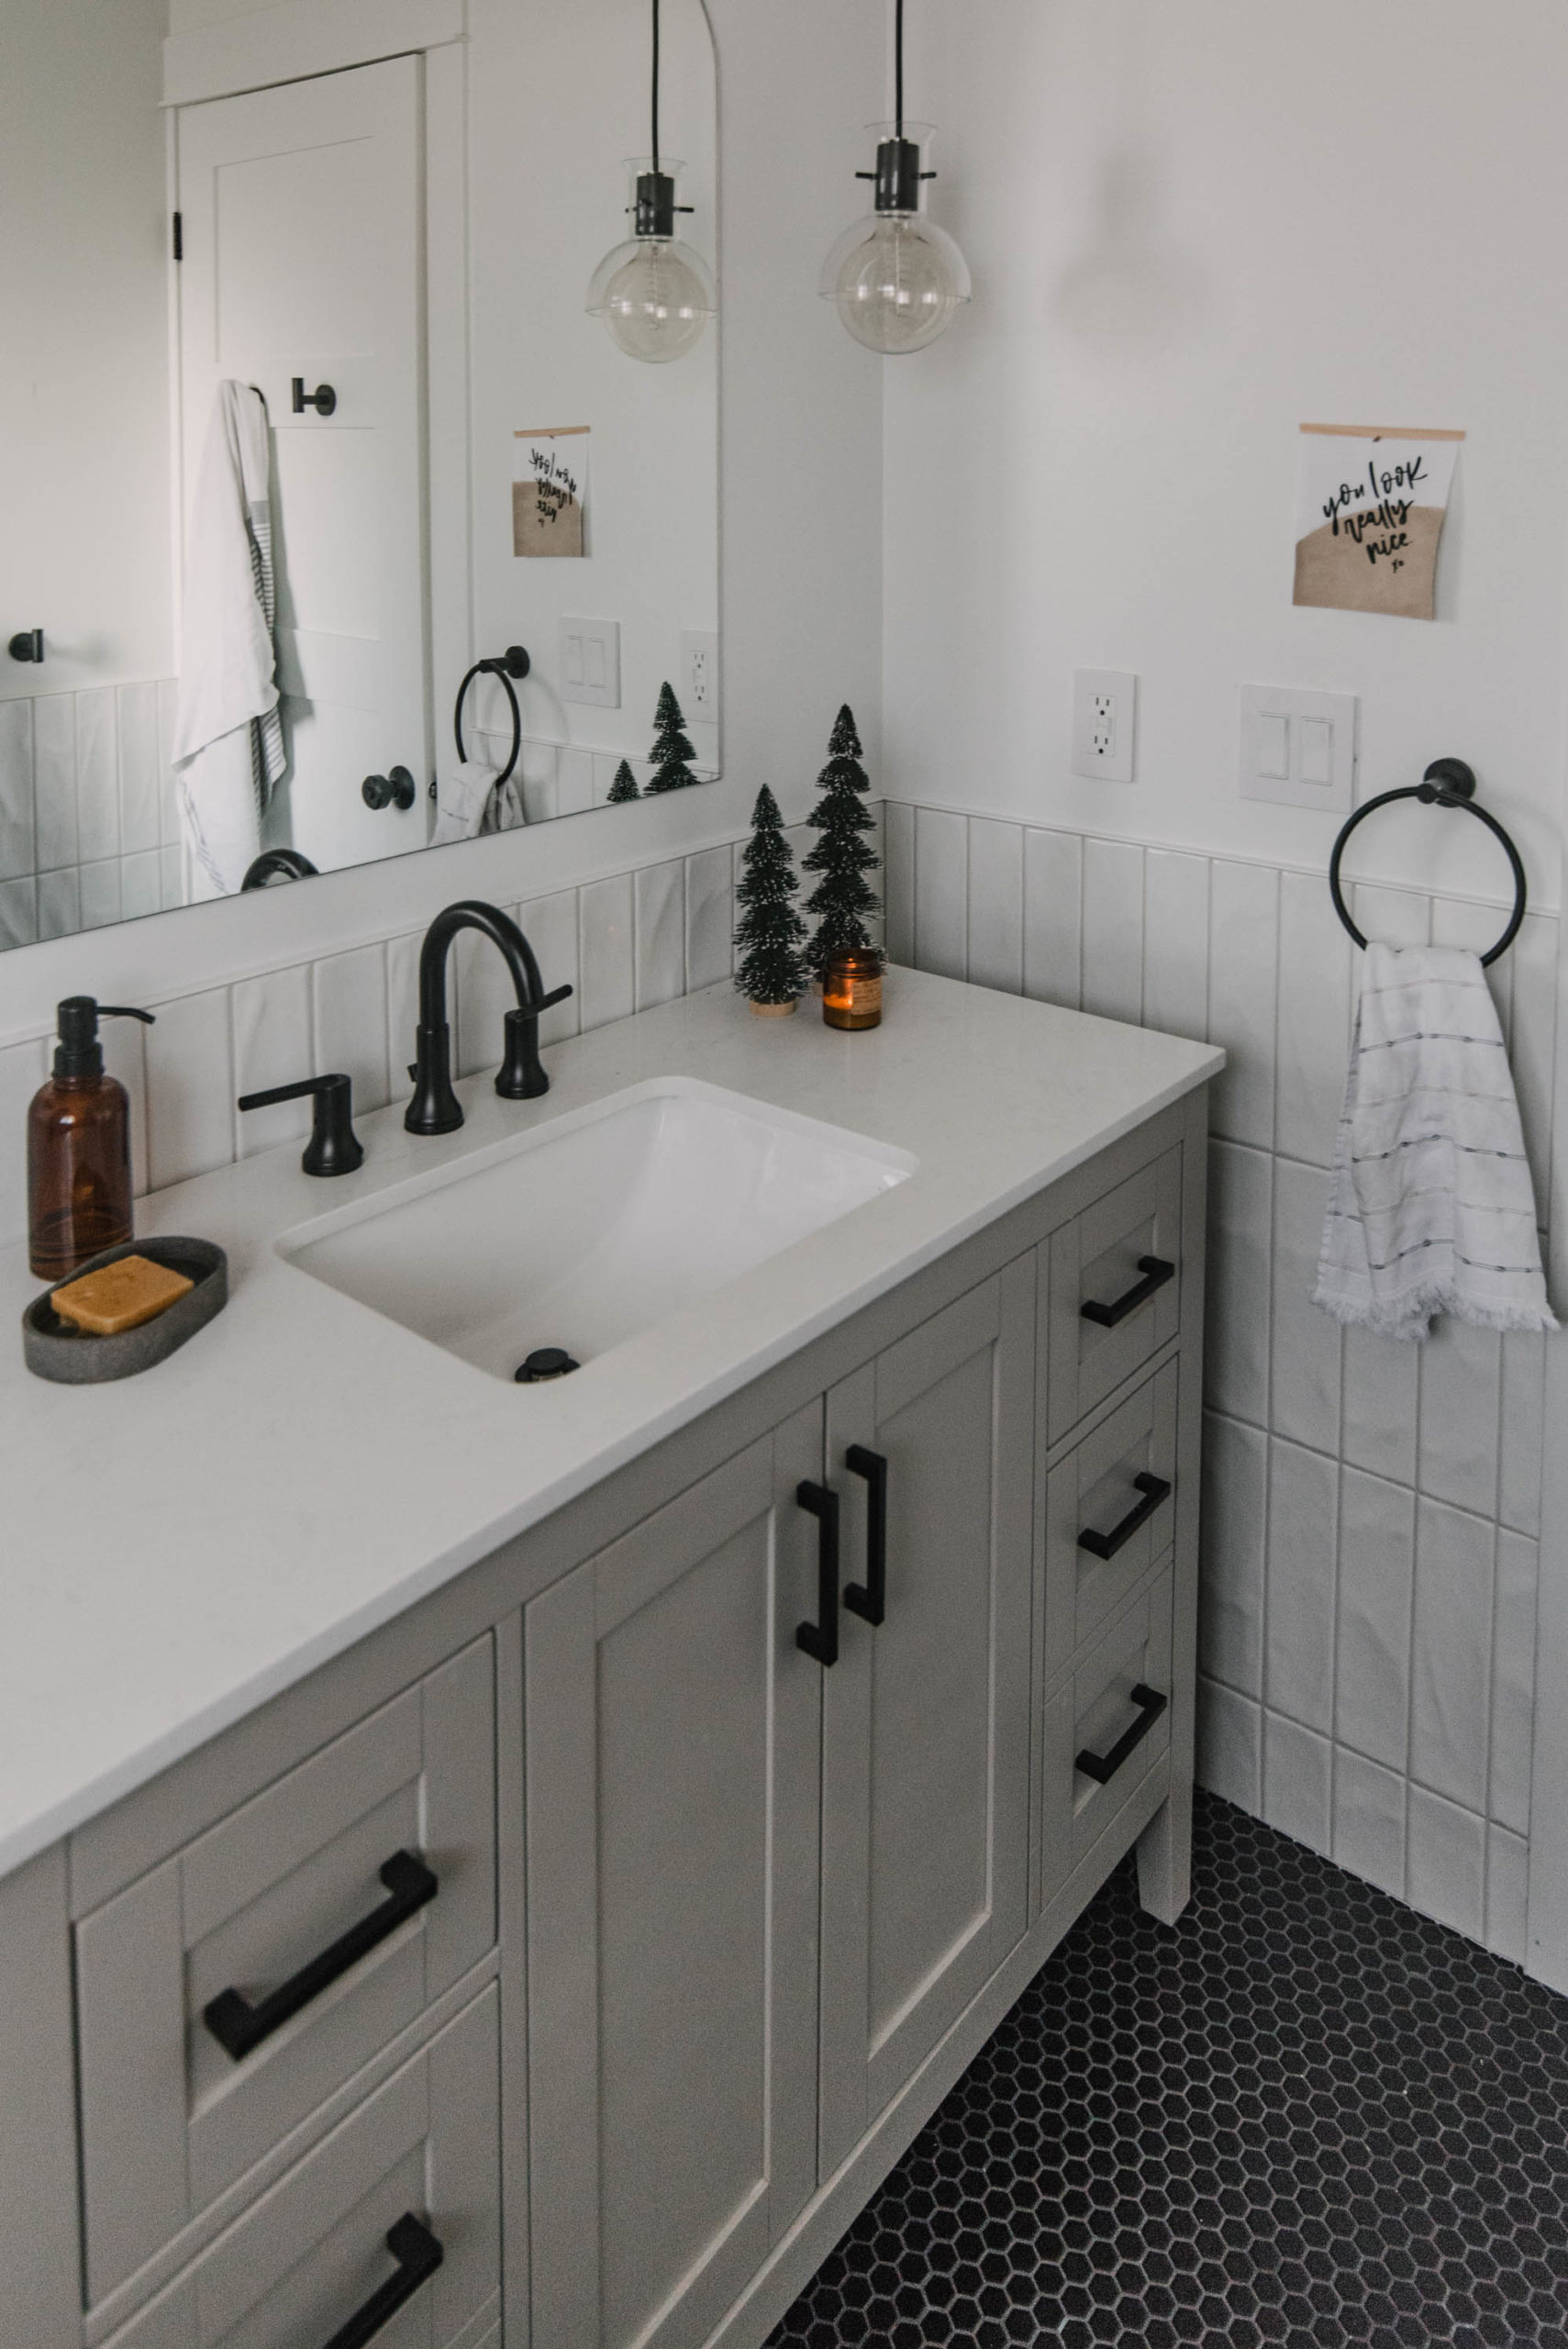 Modern Bathroom Decorated for Christmas